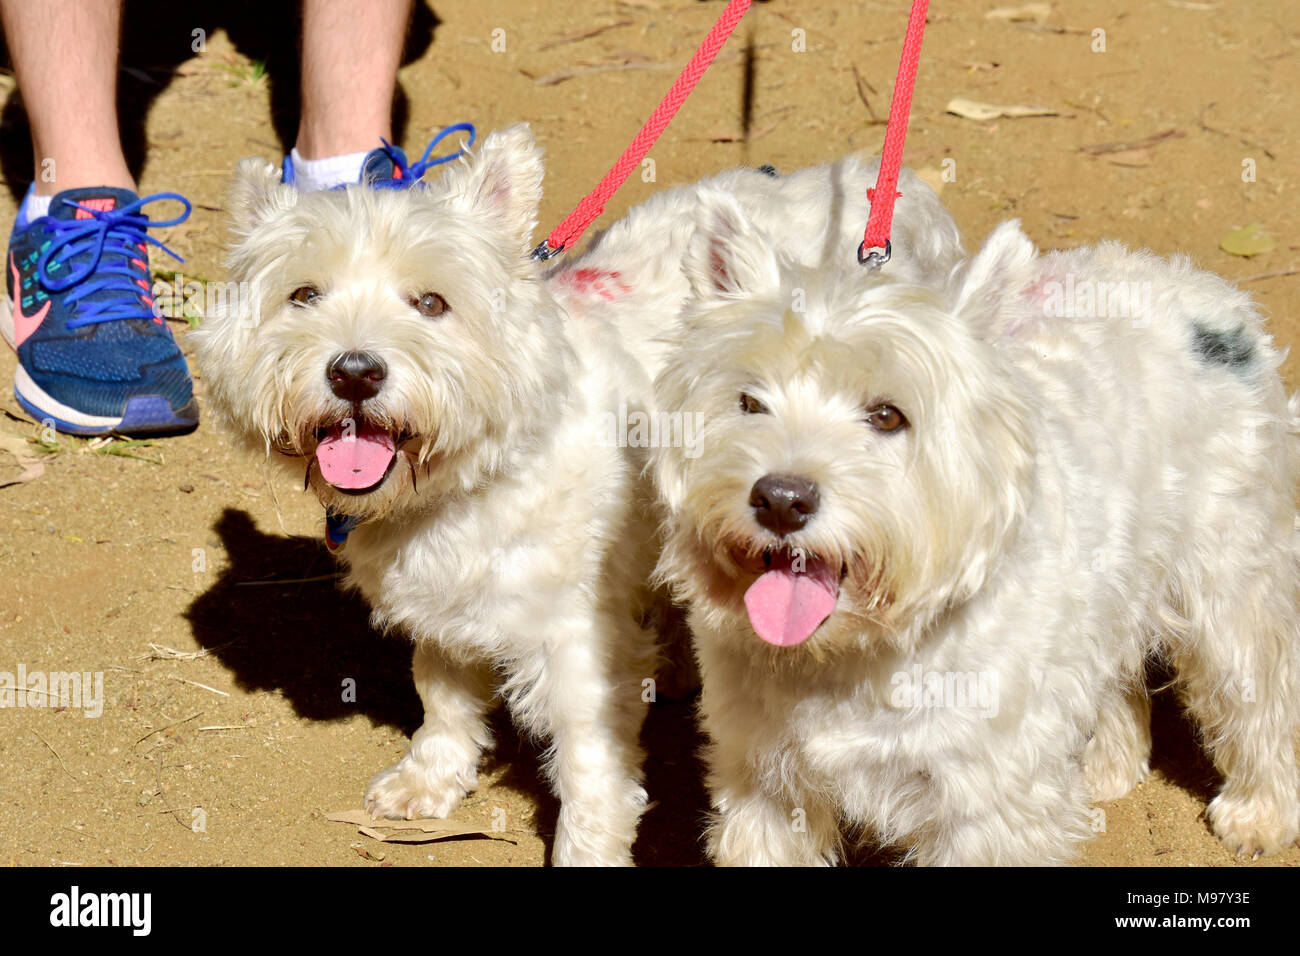 DOGS, 2 SCOTTISH TERRIERS - Stock Image